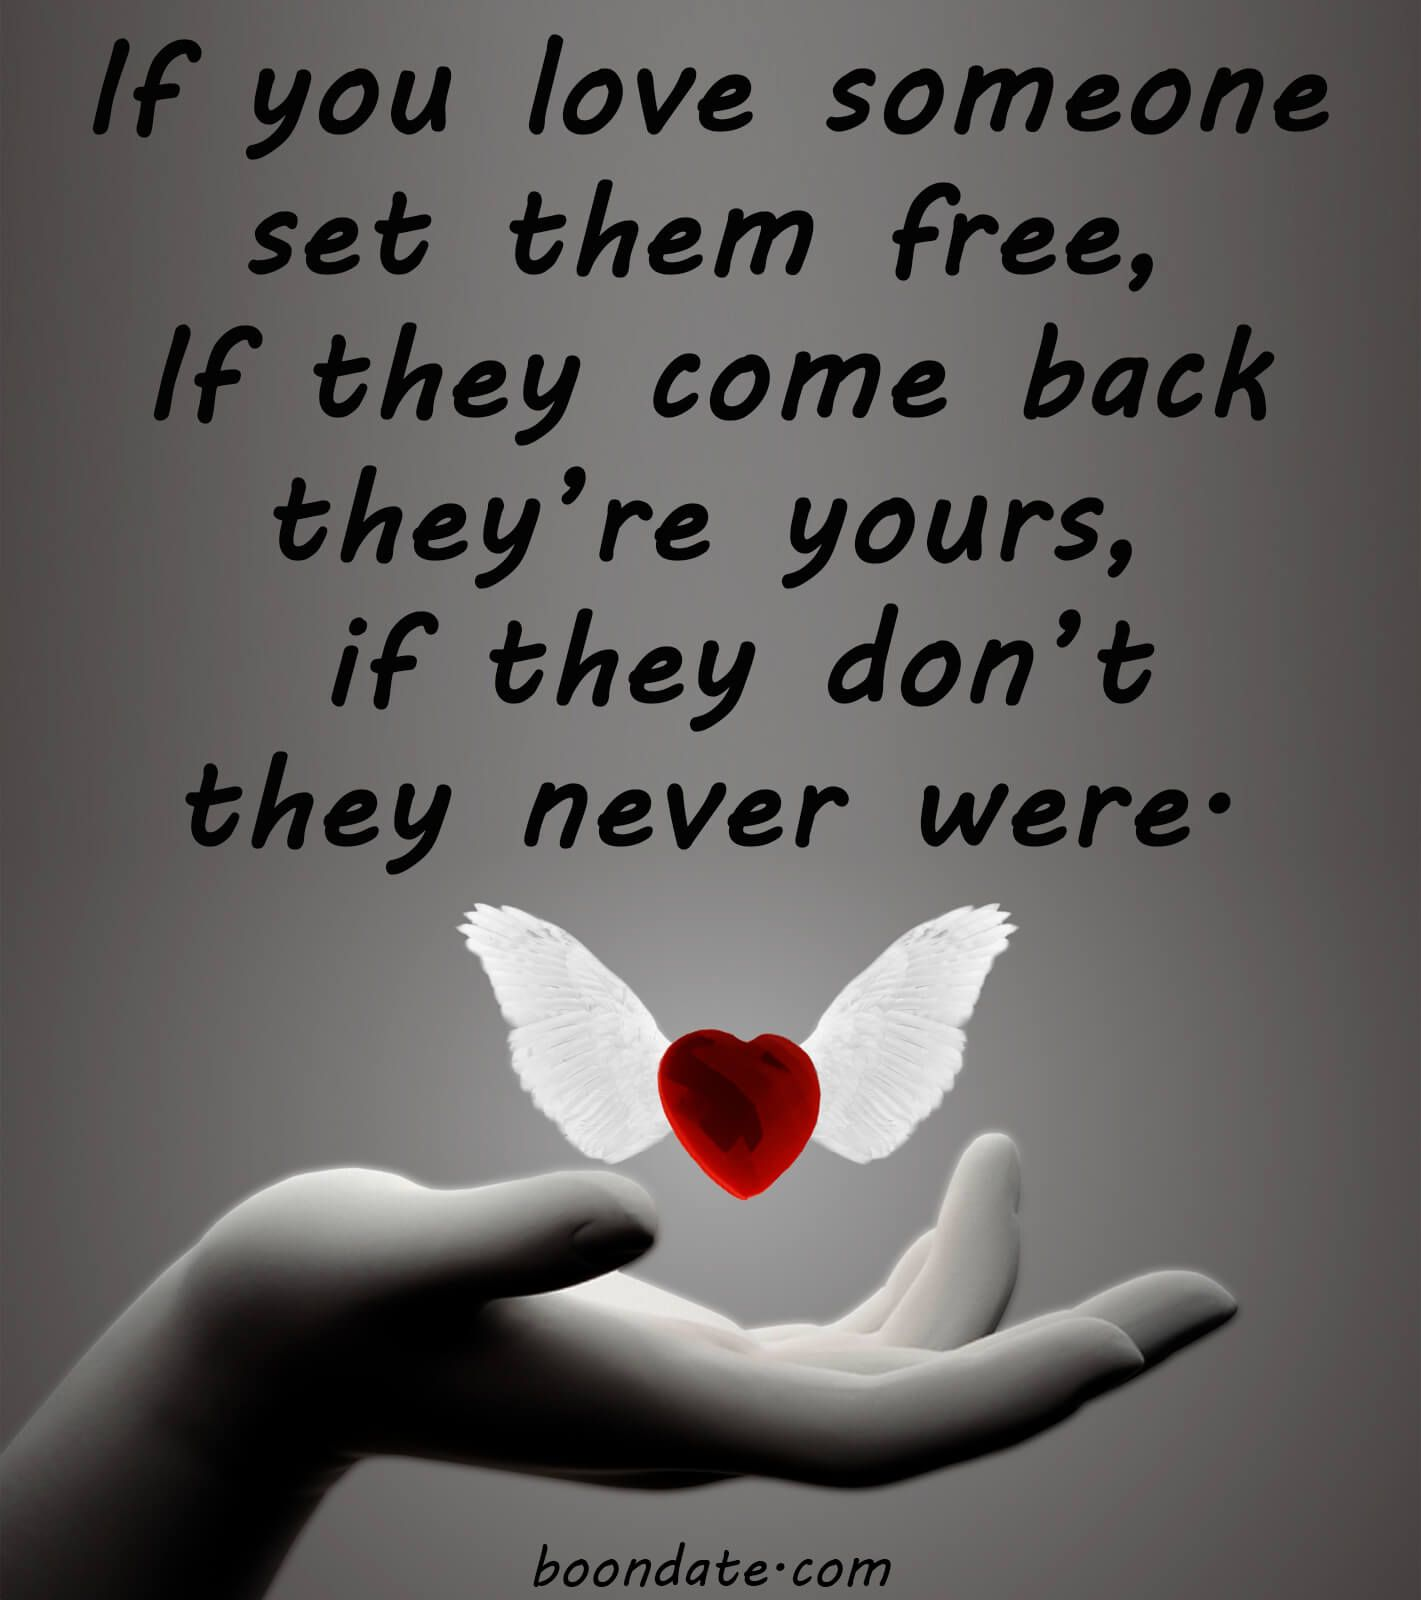 If you love someone set them free - Love Quotes  Free love quotes